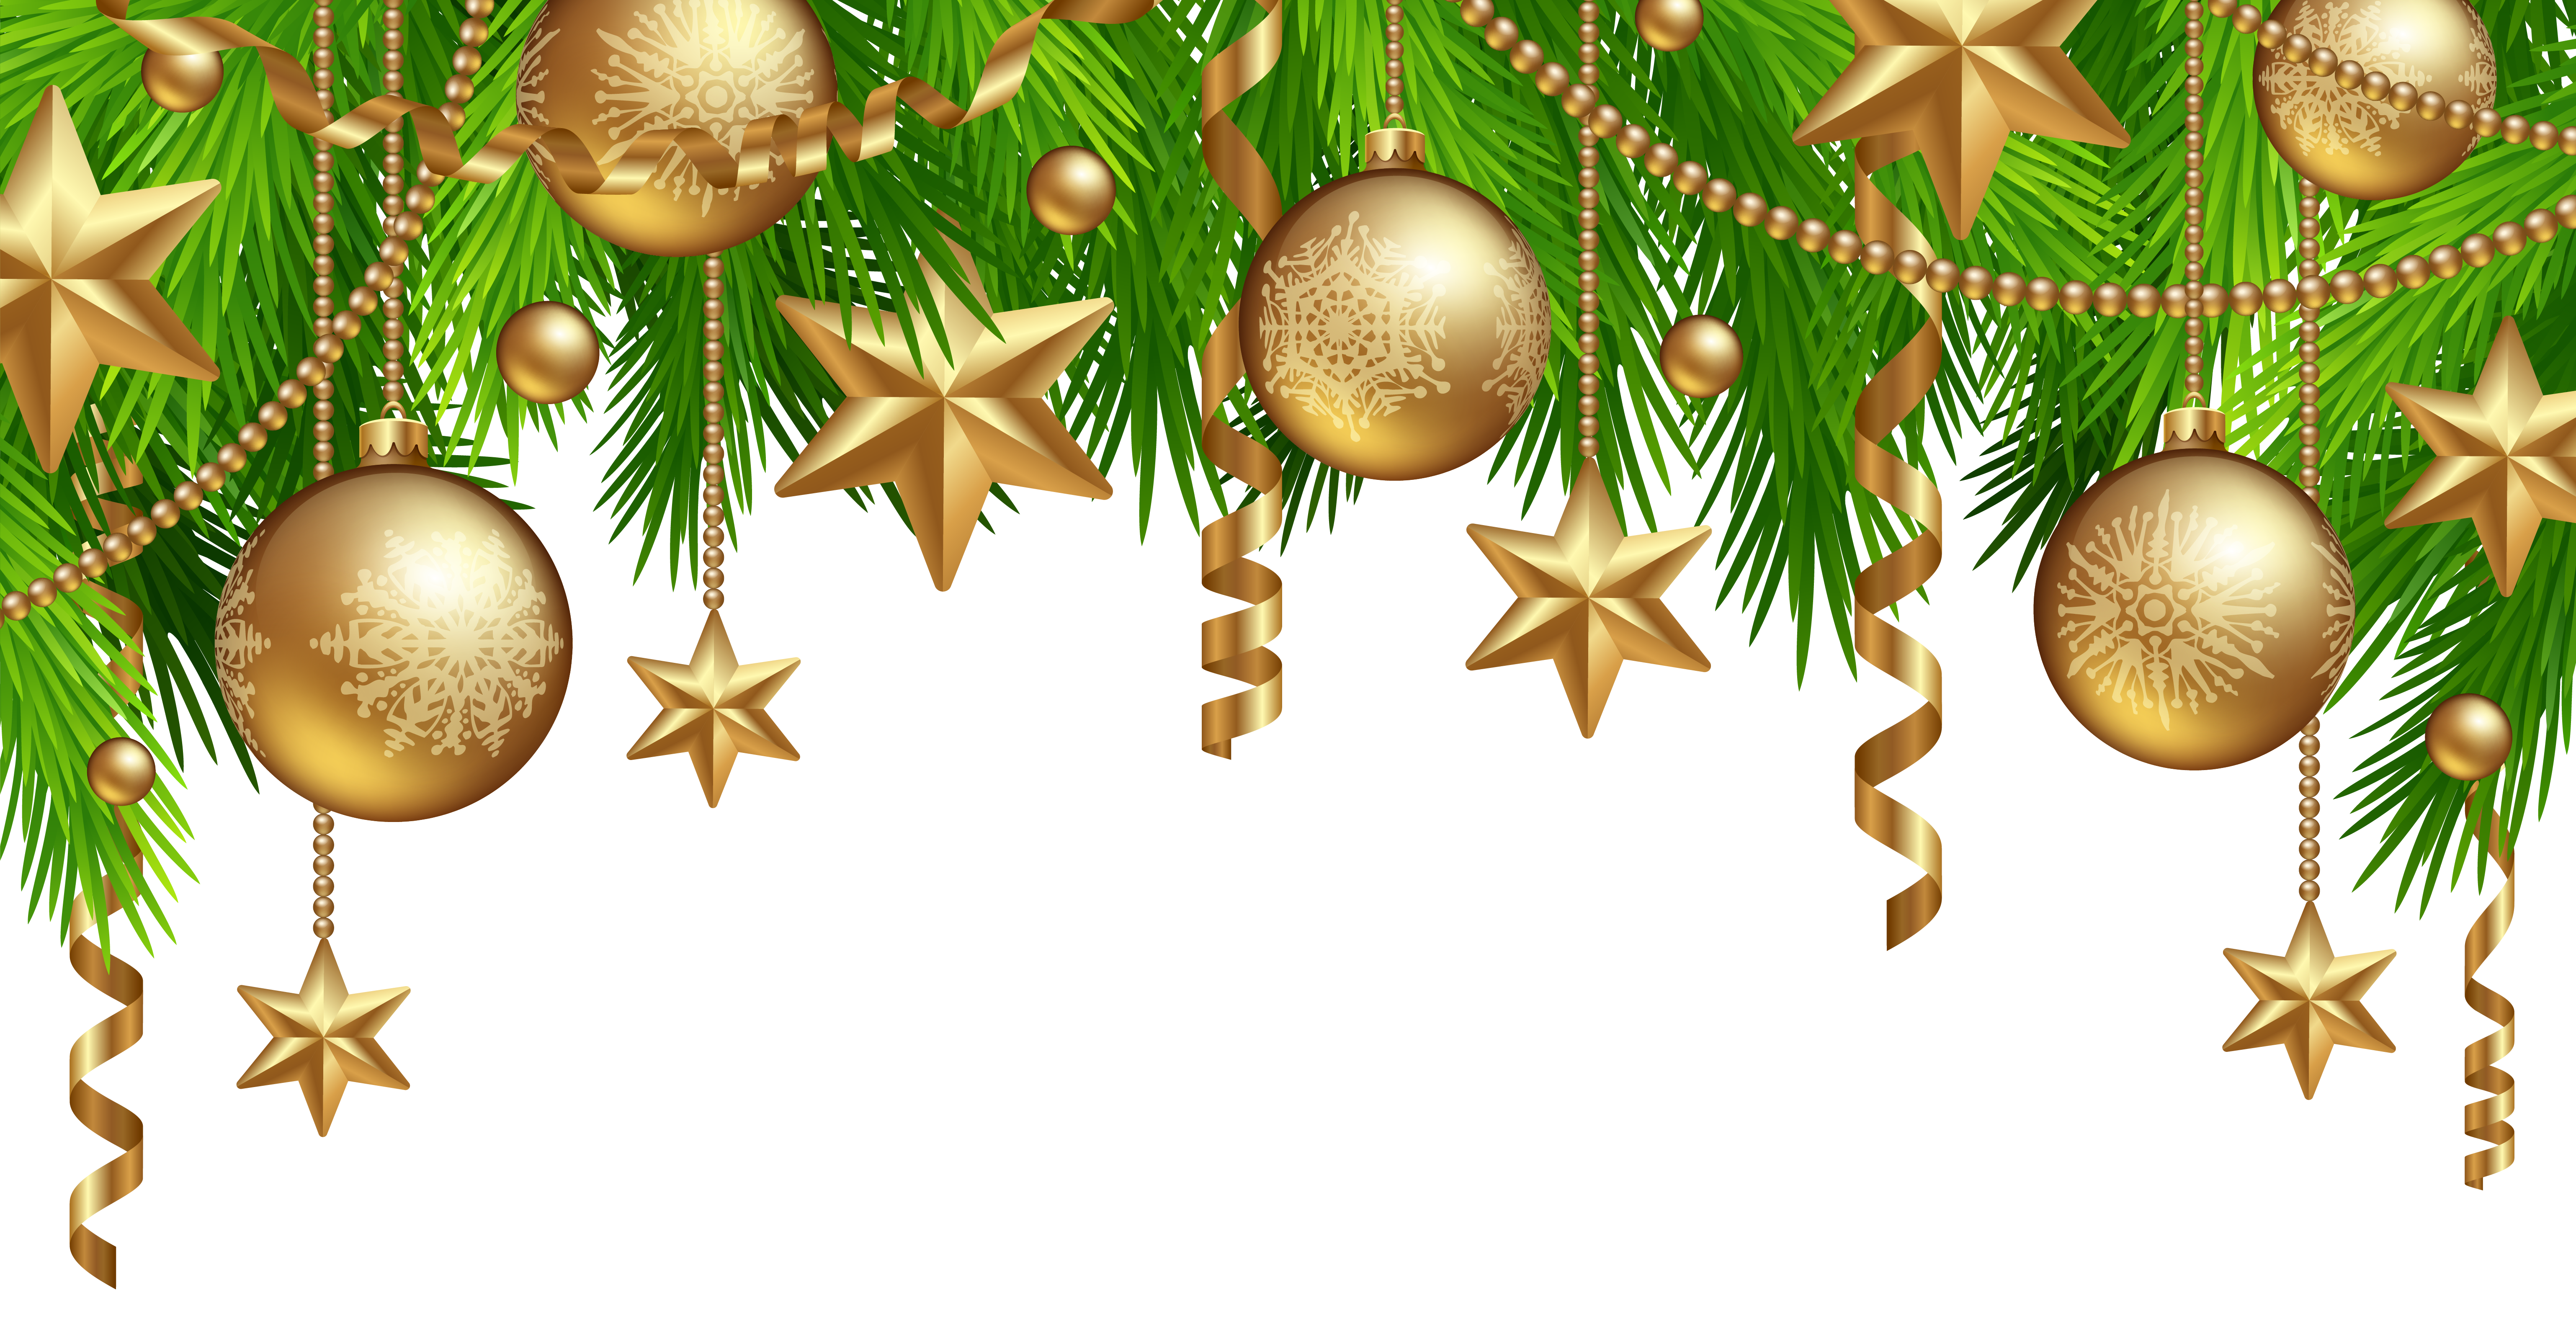 png freeuse download Christmas Border Decor PNG Clipart Image